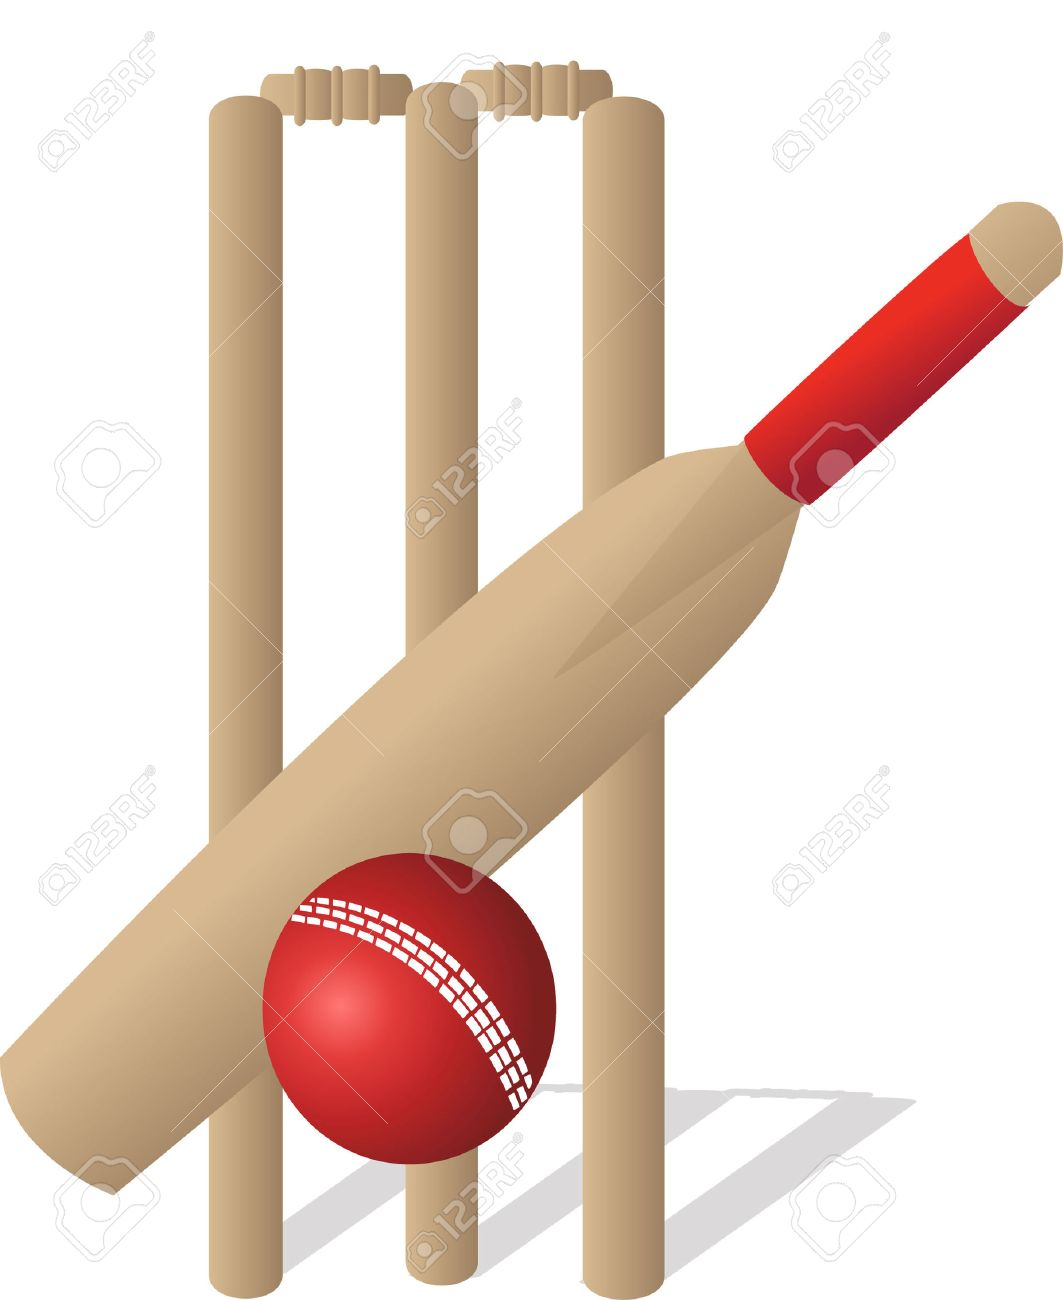 A Cricket Ball And Bat And Wickets Royalty Free Cliparts Vectors And Stock Illustration Image 7489235